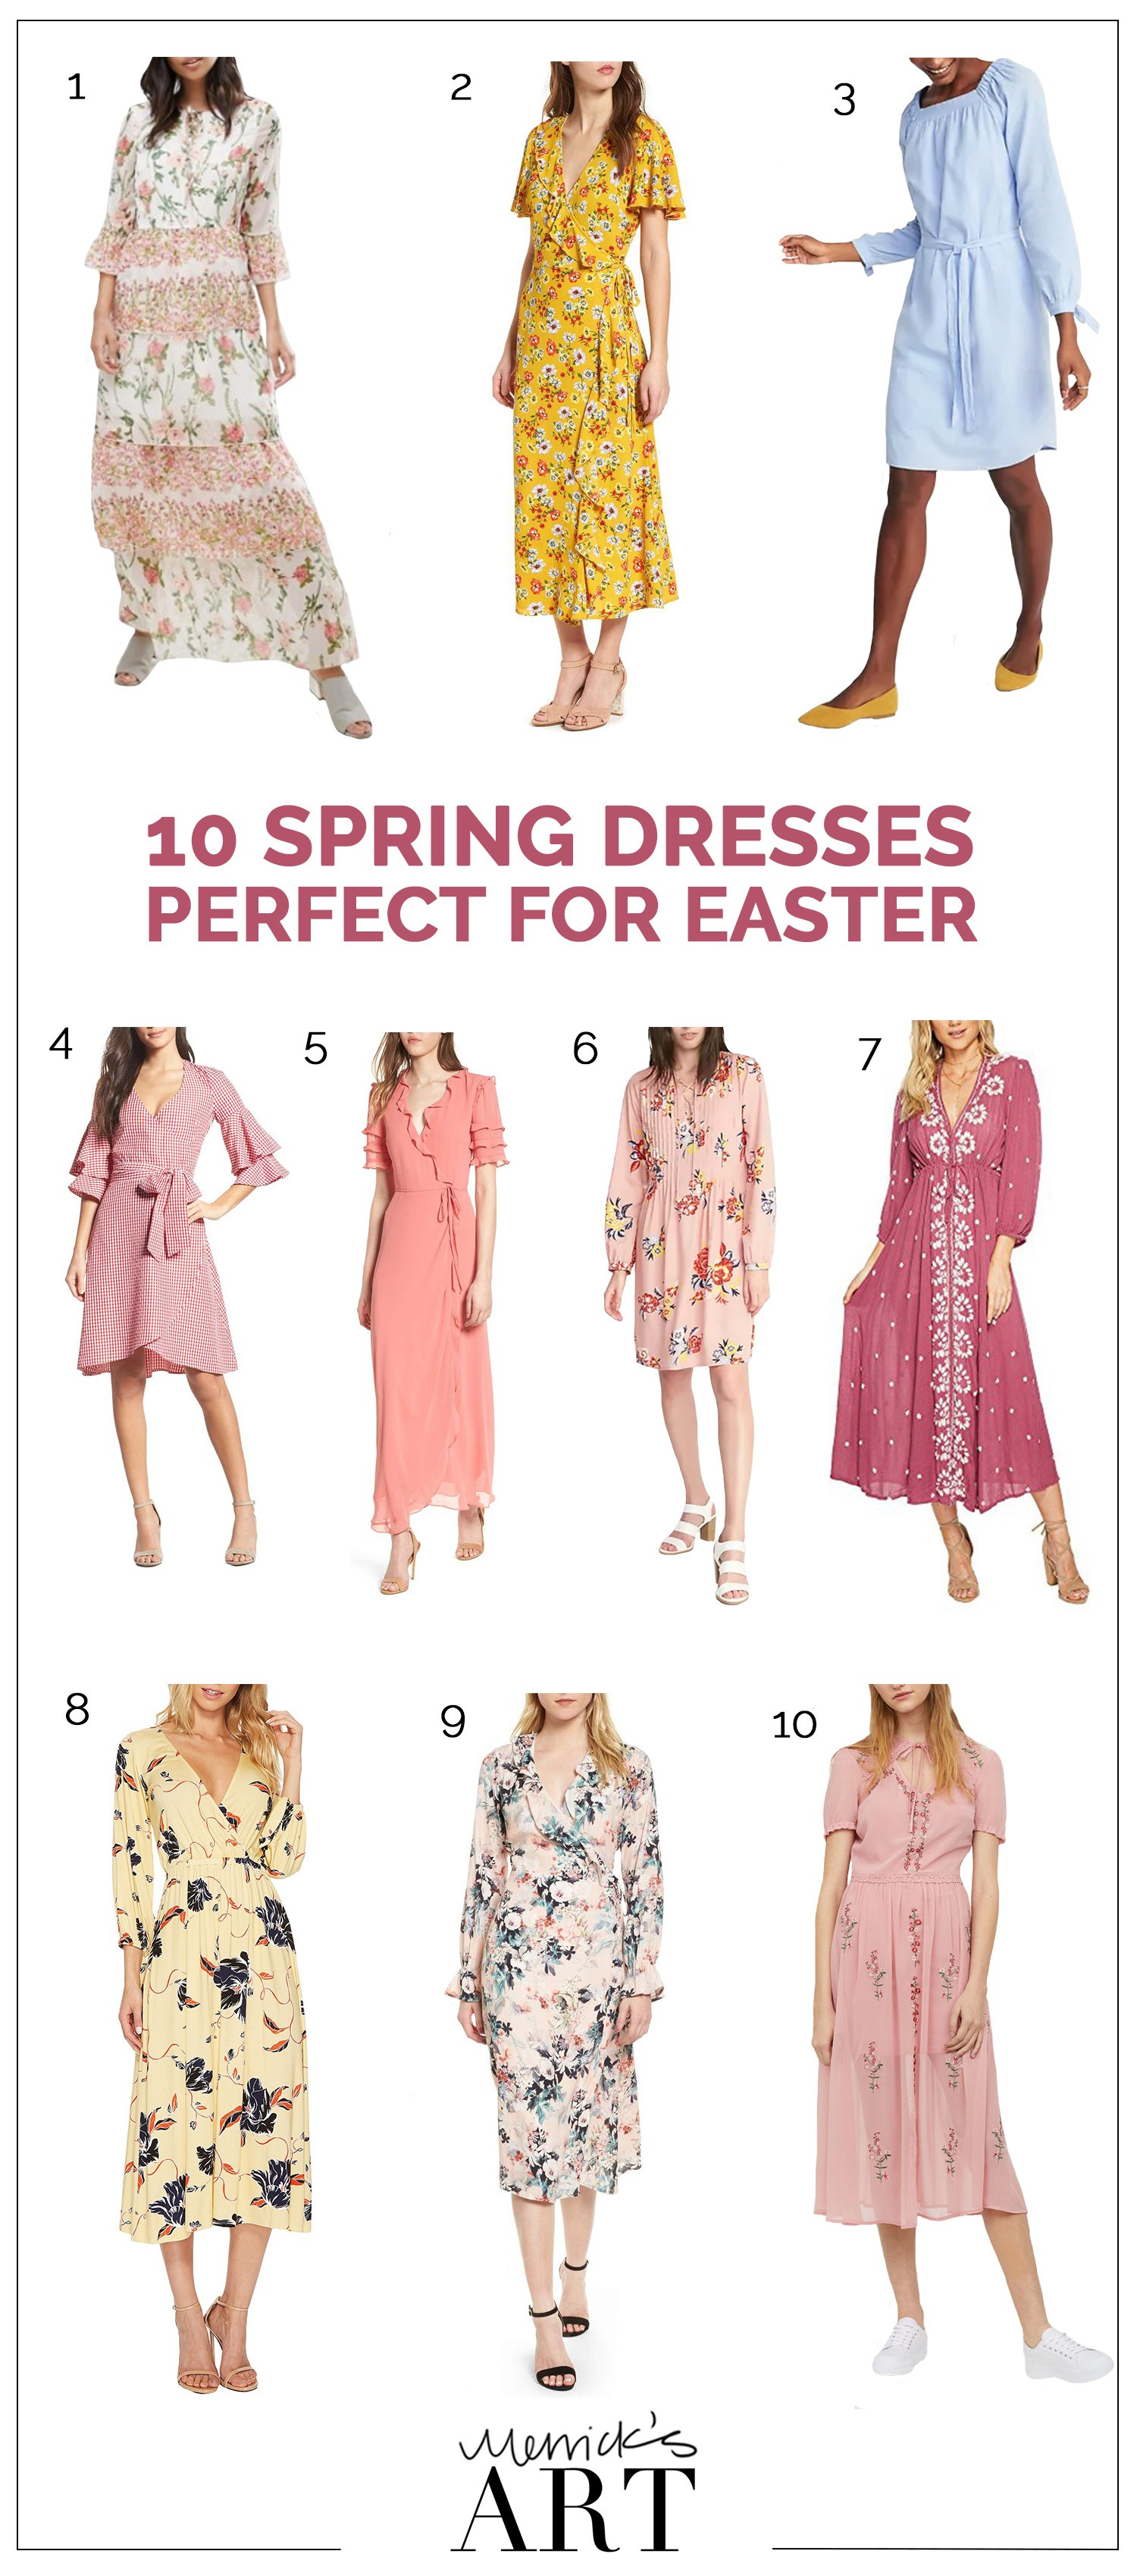 fc87ee0cac8d22 10 Spring Dresses that are Perfect for Easter Weekend | Merrick's ...